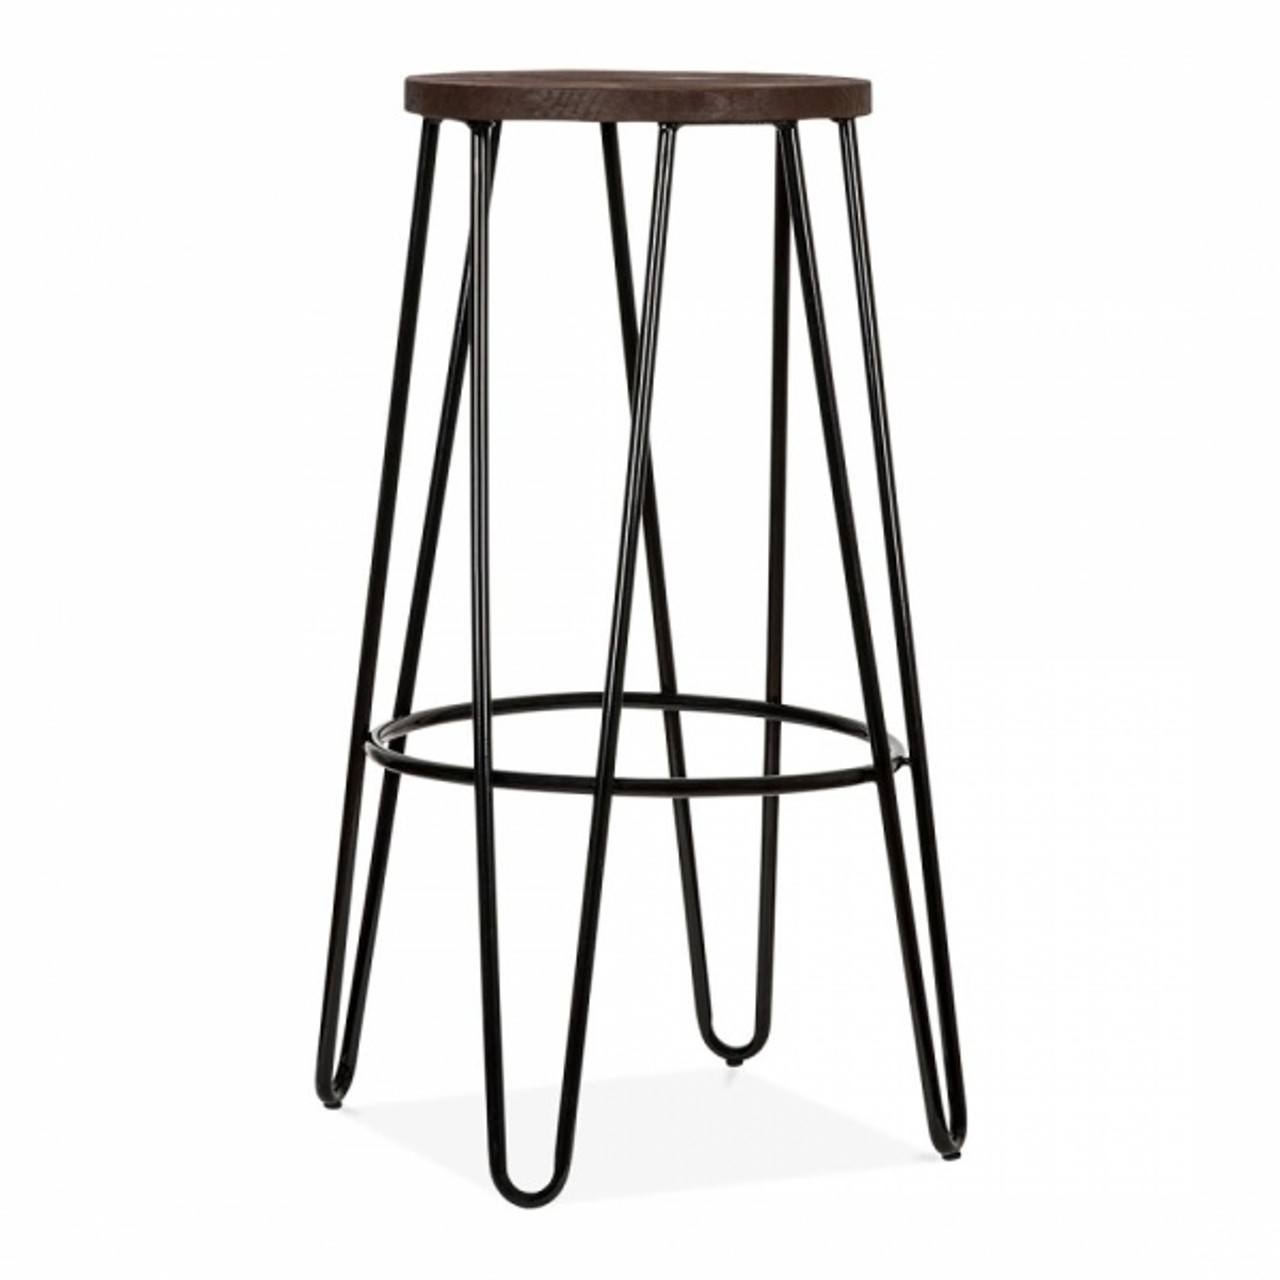 Groovy Hairpin Style Scandi Bar Stool Black 76Cm Bralicious Painted Fabric Chair Ideas Braliciousco